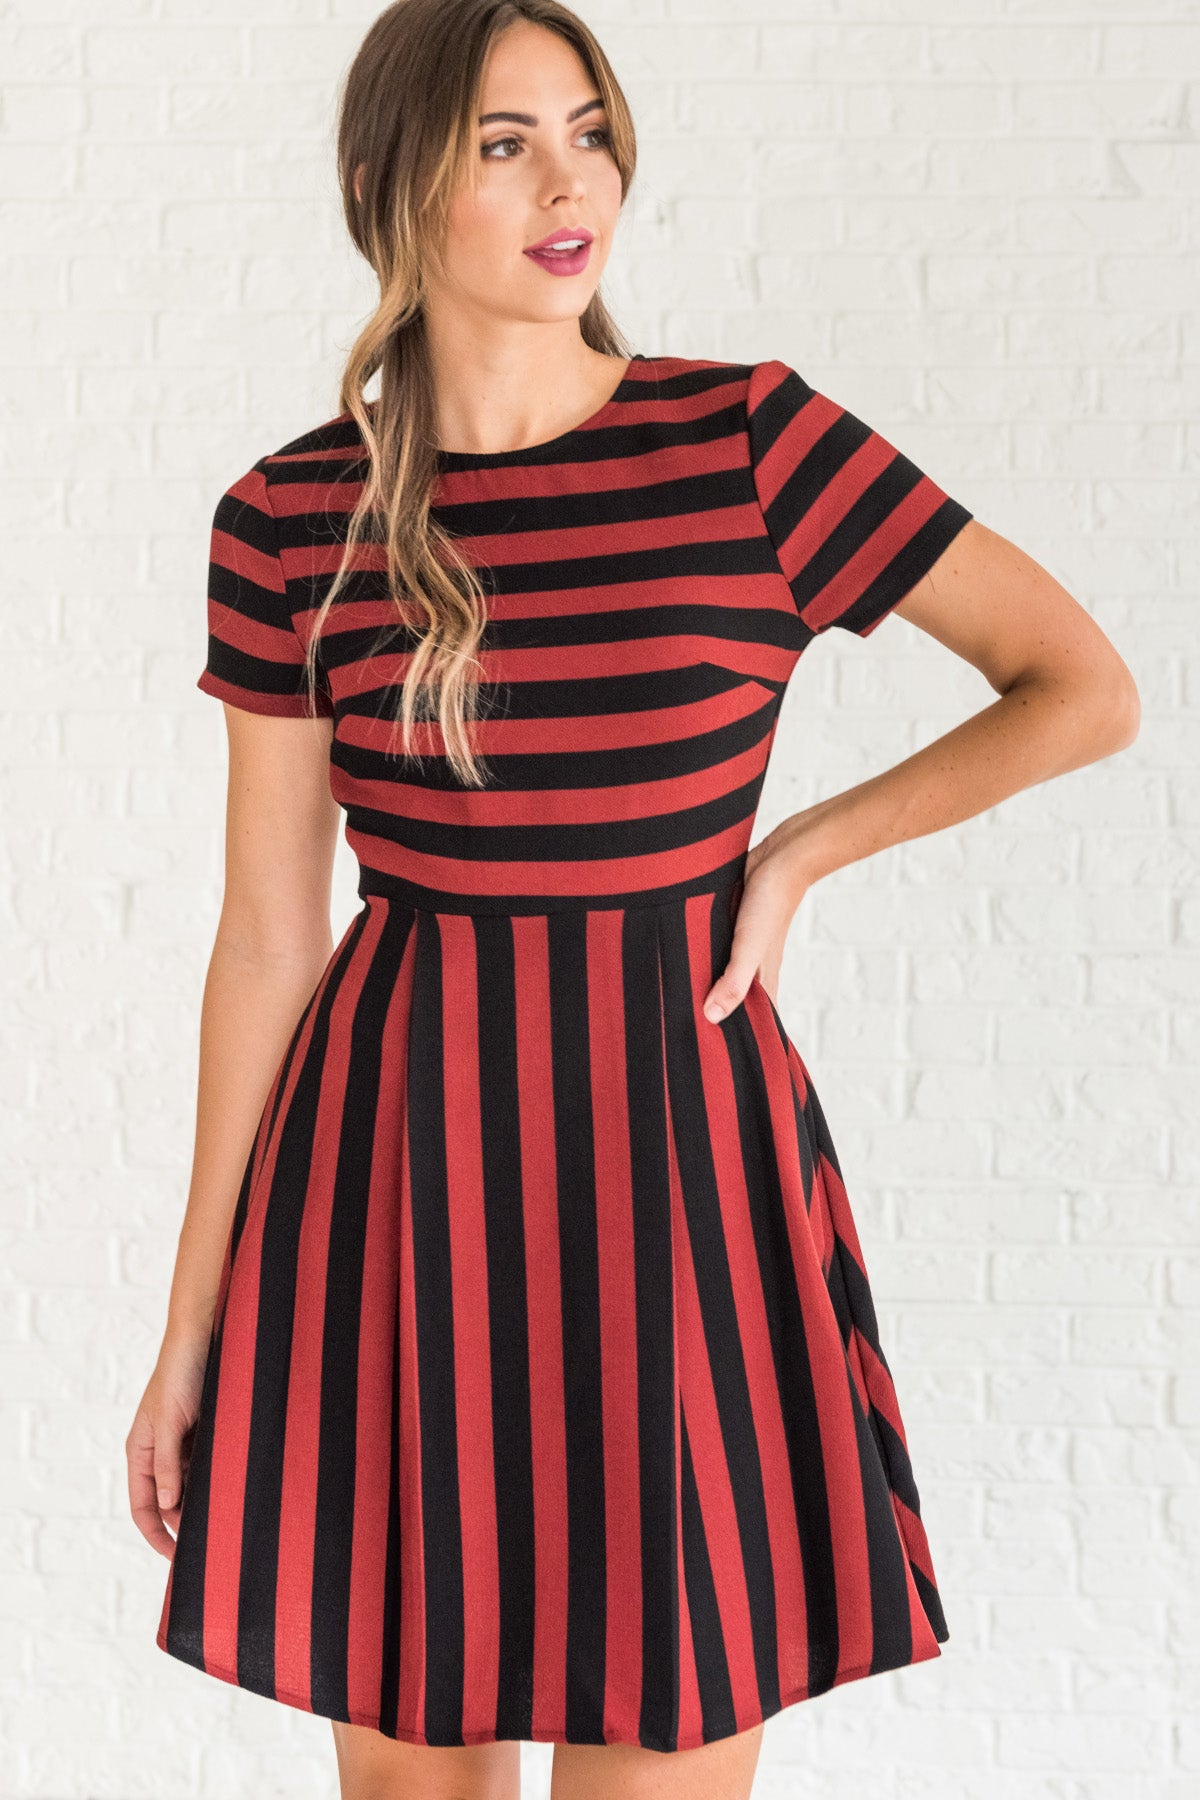 Burgundy Red Black Striped Party Skater Flare Mini Dresses